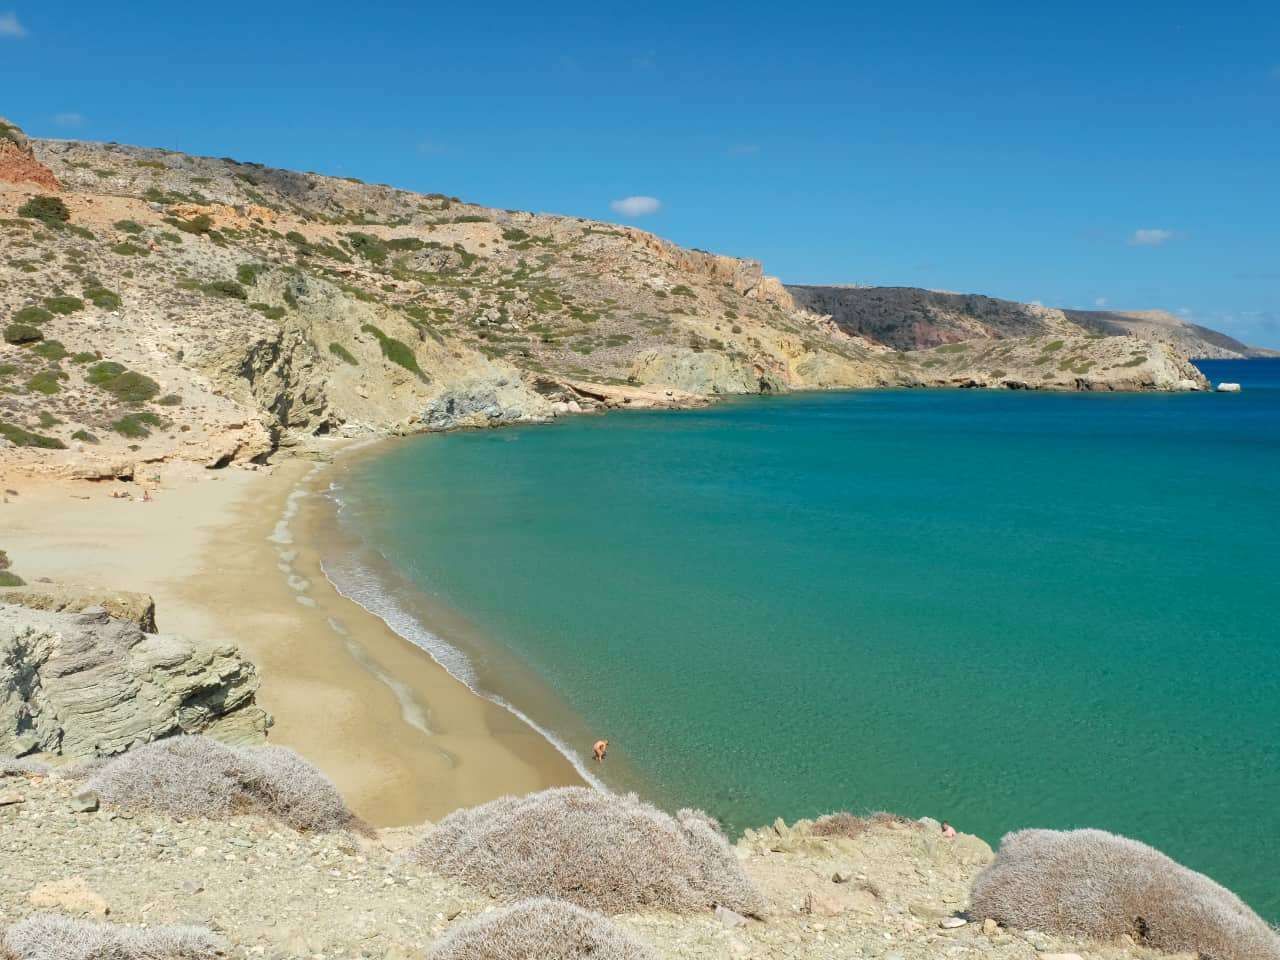 itanos erimoupolis ancient beaches, east crete best beaches, activities east crete, crete things to do